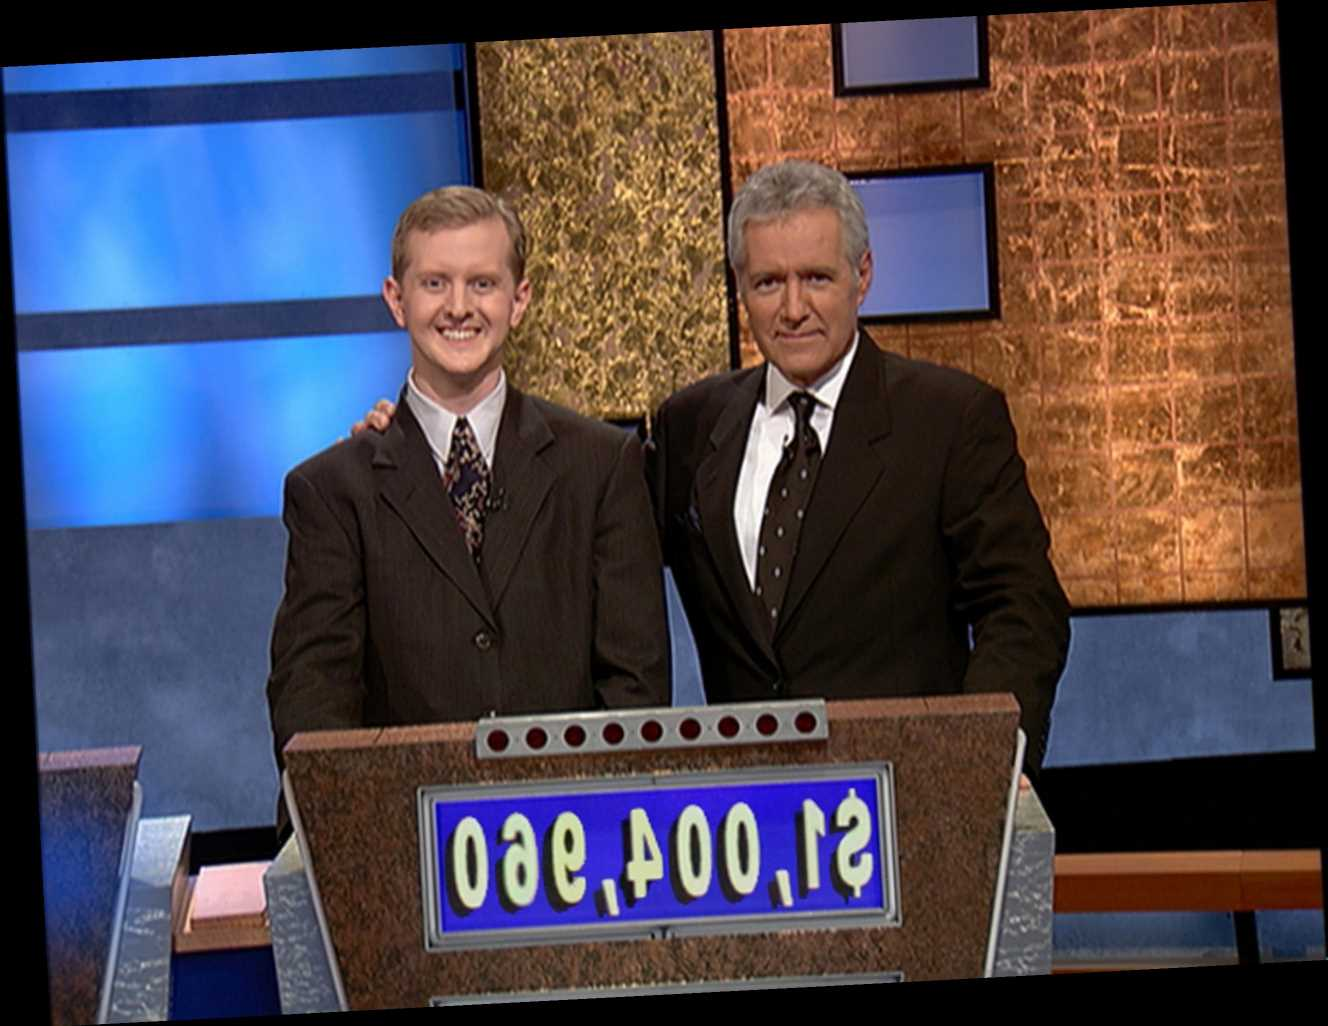 'Jeopardy!': Ken Jennings' Offensive Tweets Could Keep Him From Living Up to Alex Trebek's Legacy